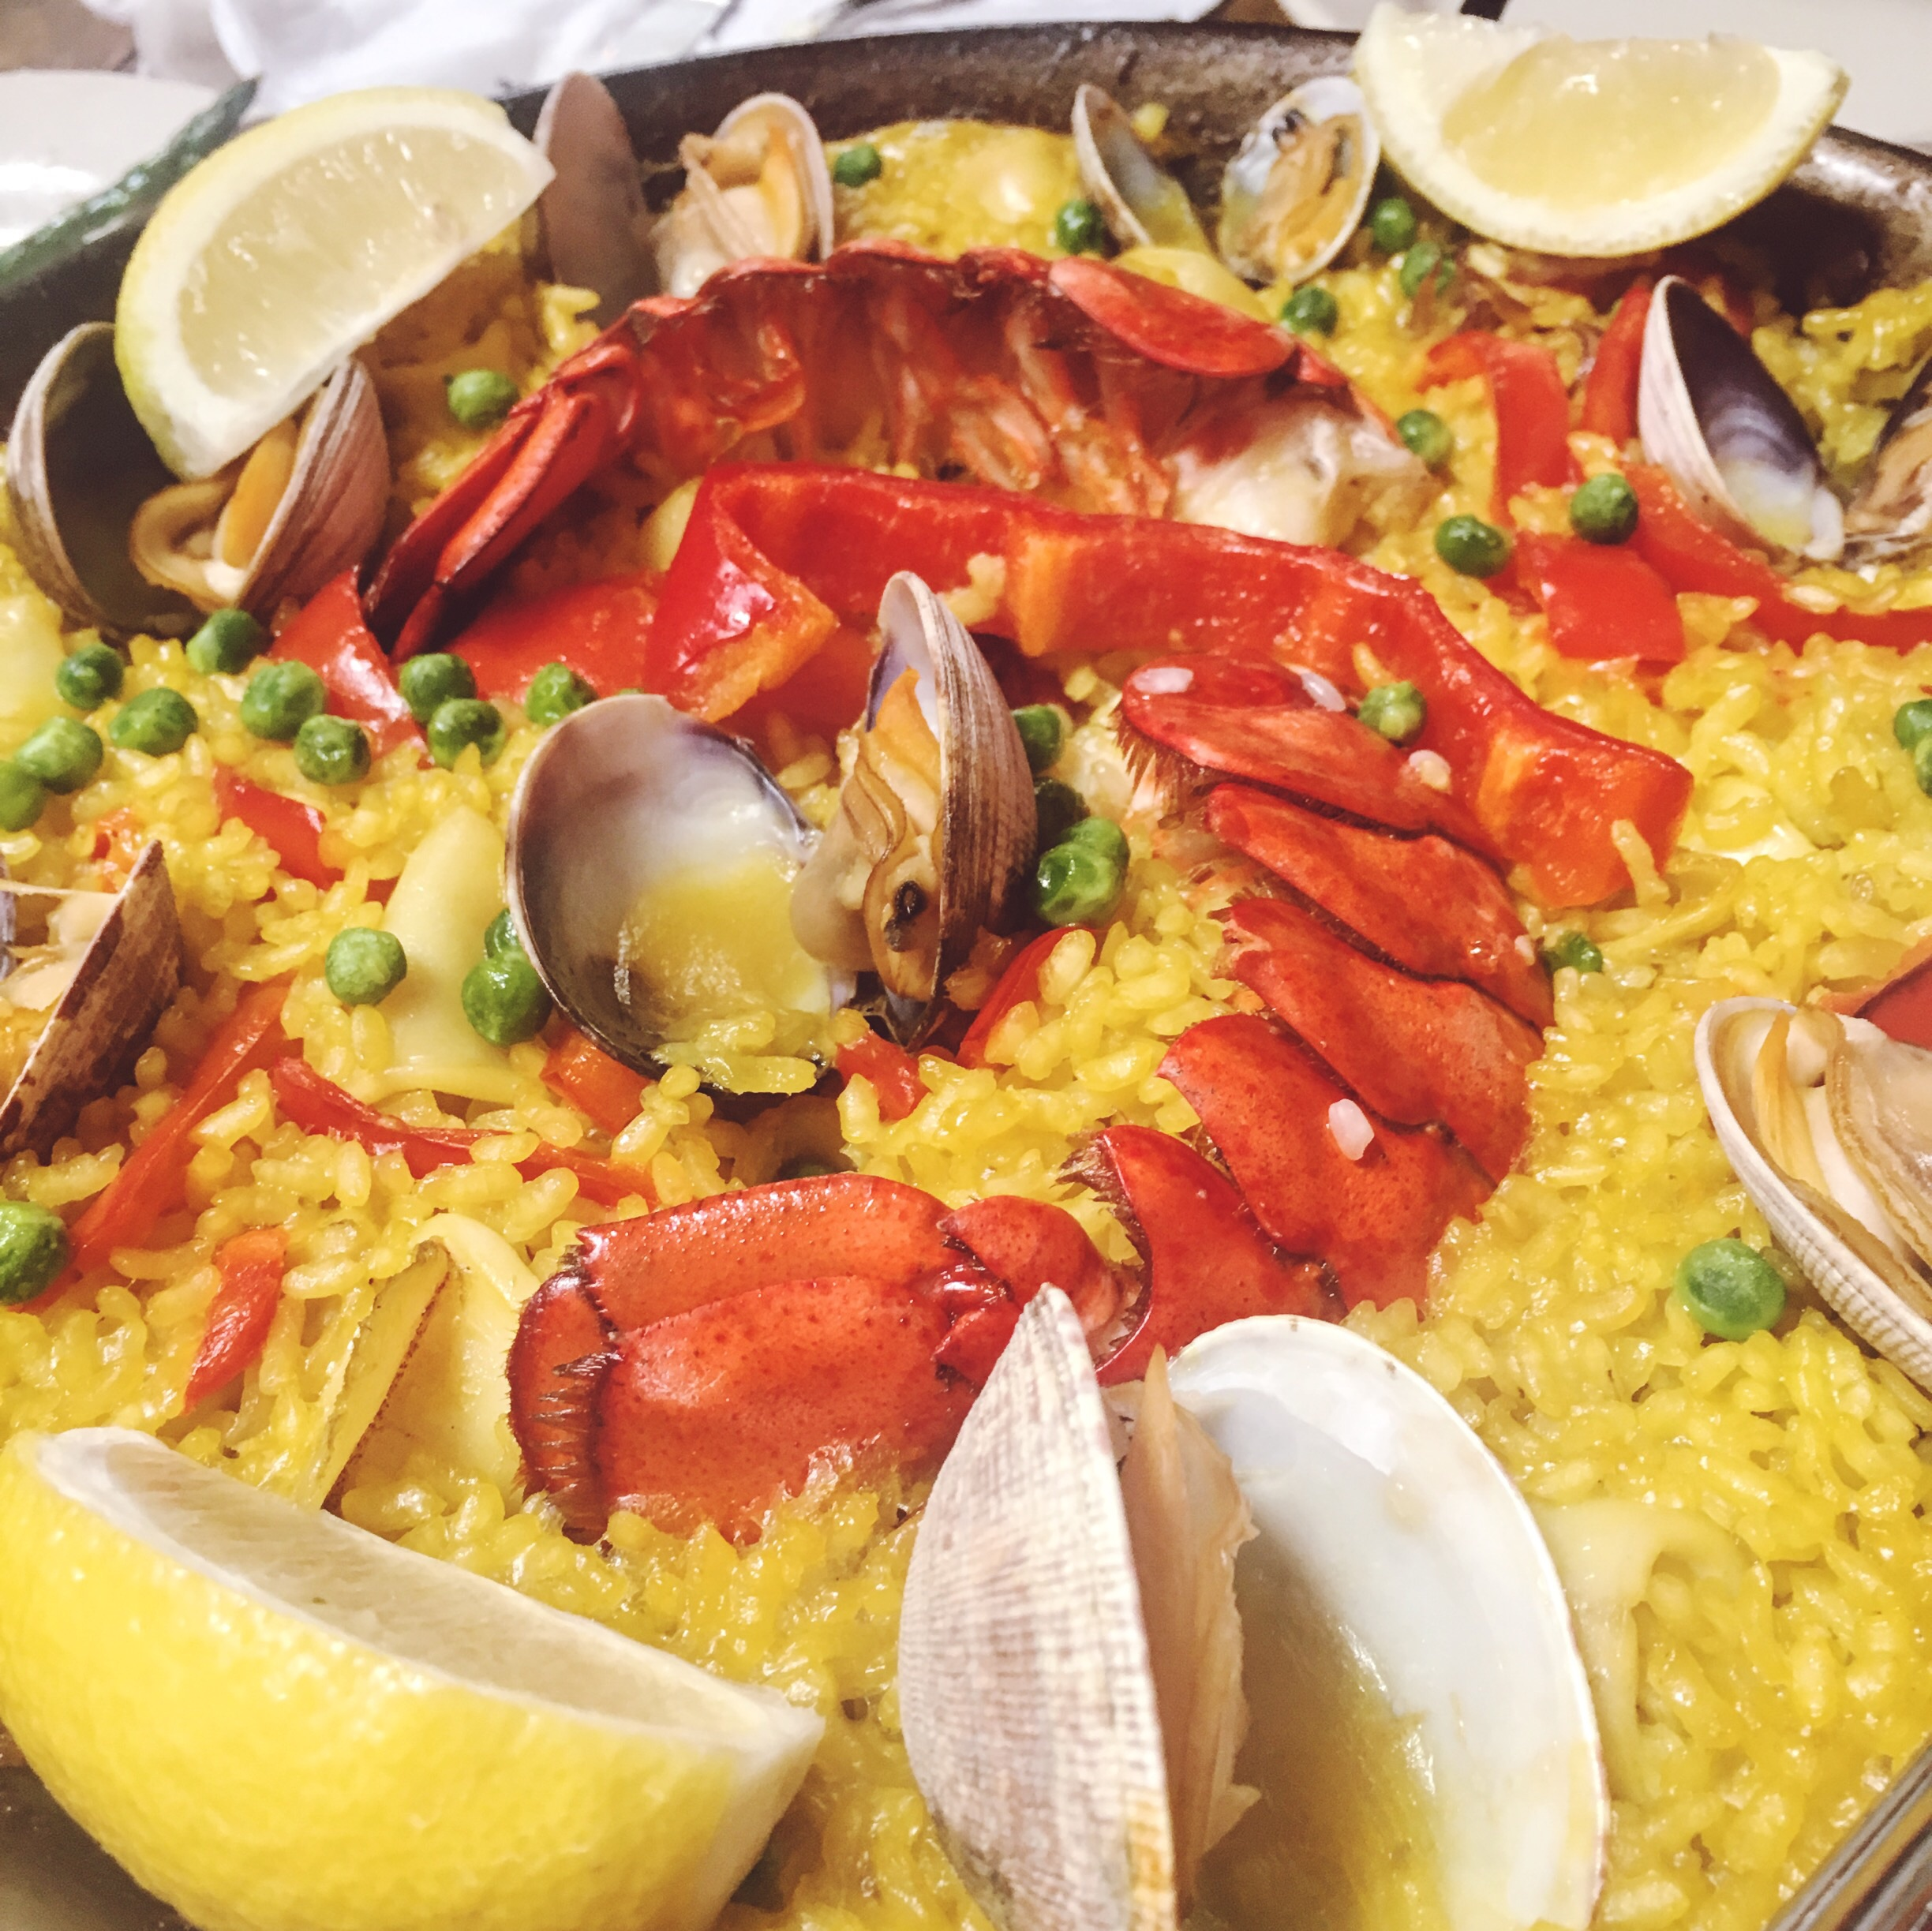 Paella de Longosta (Lobster paella)  up close and personal... in all it's glory.